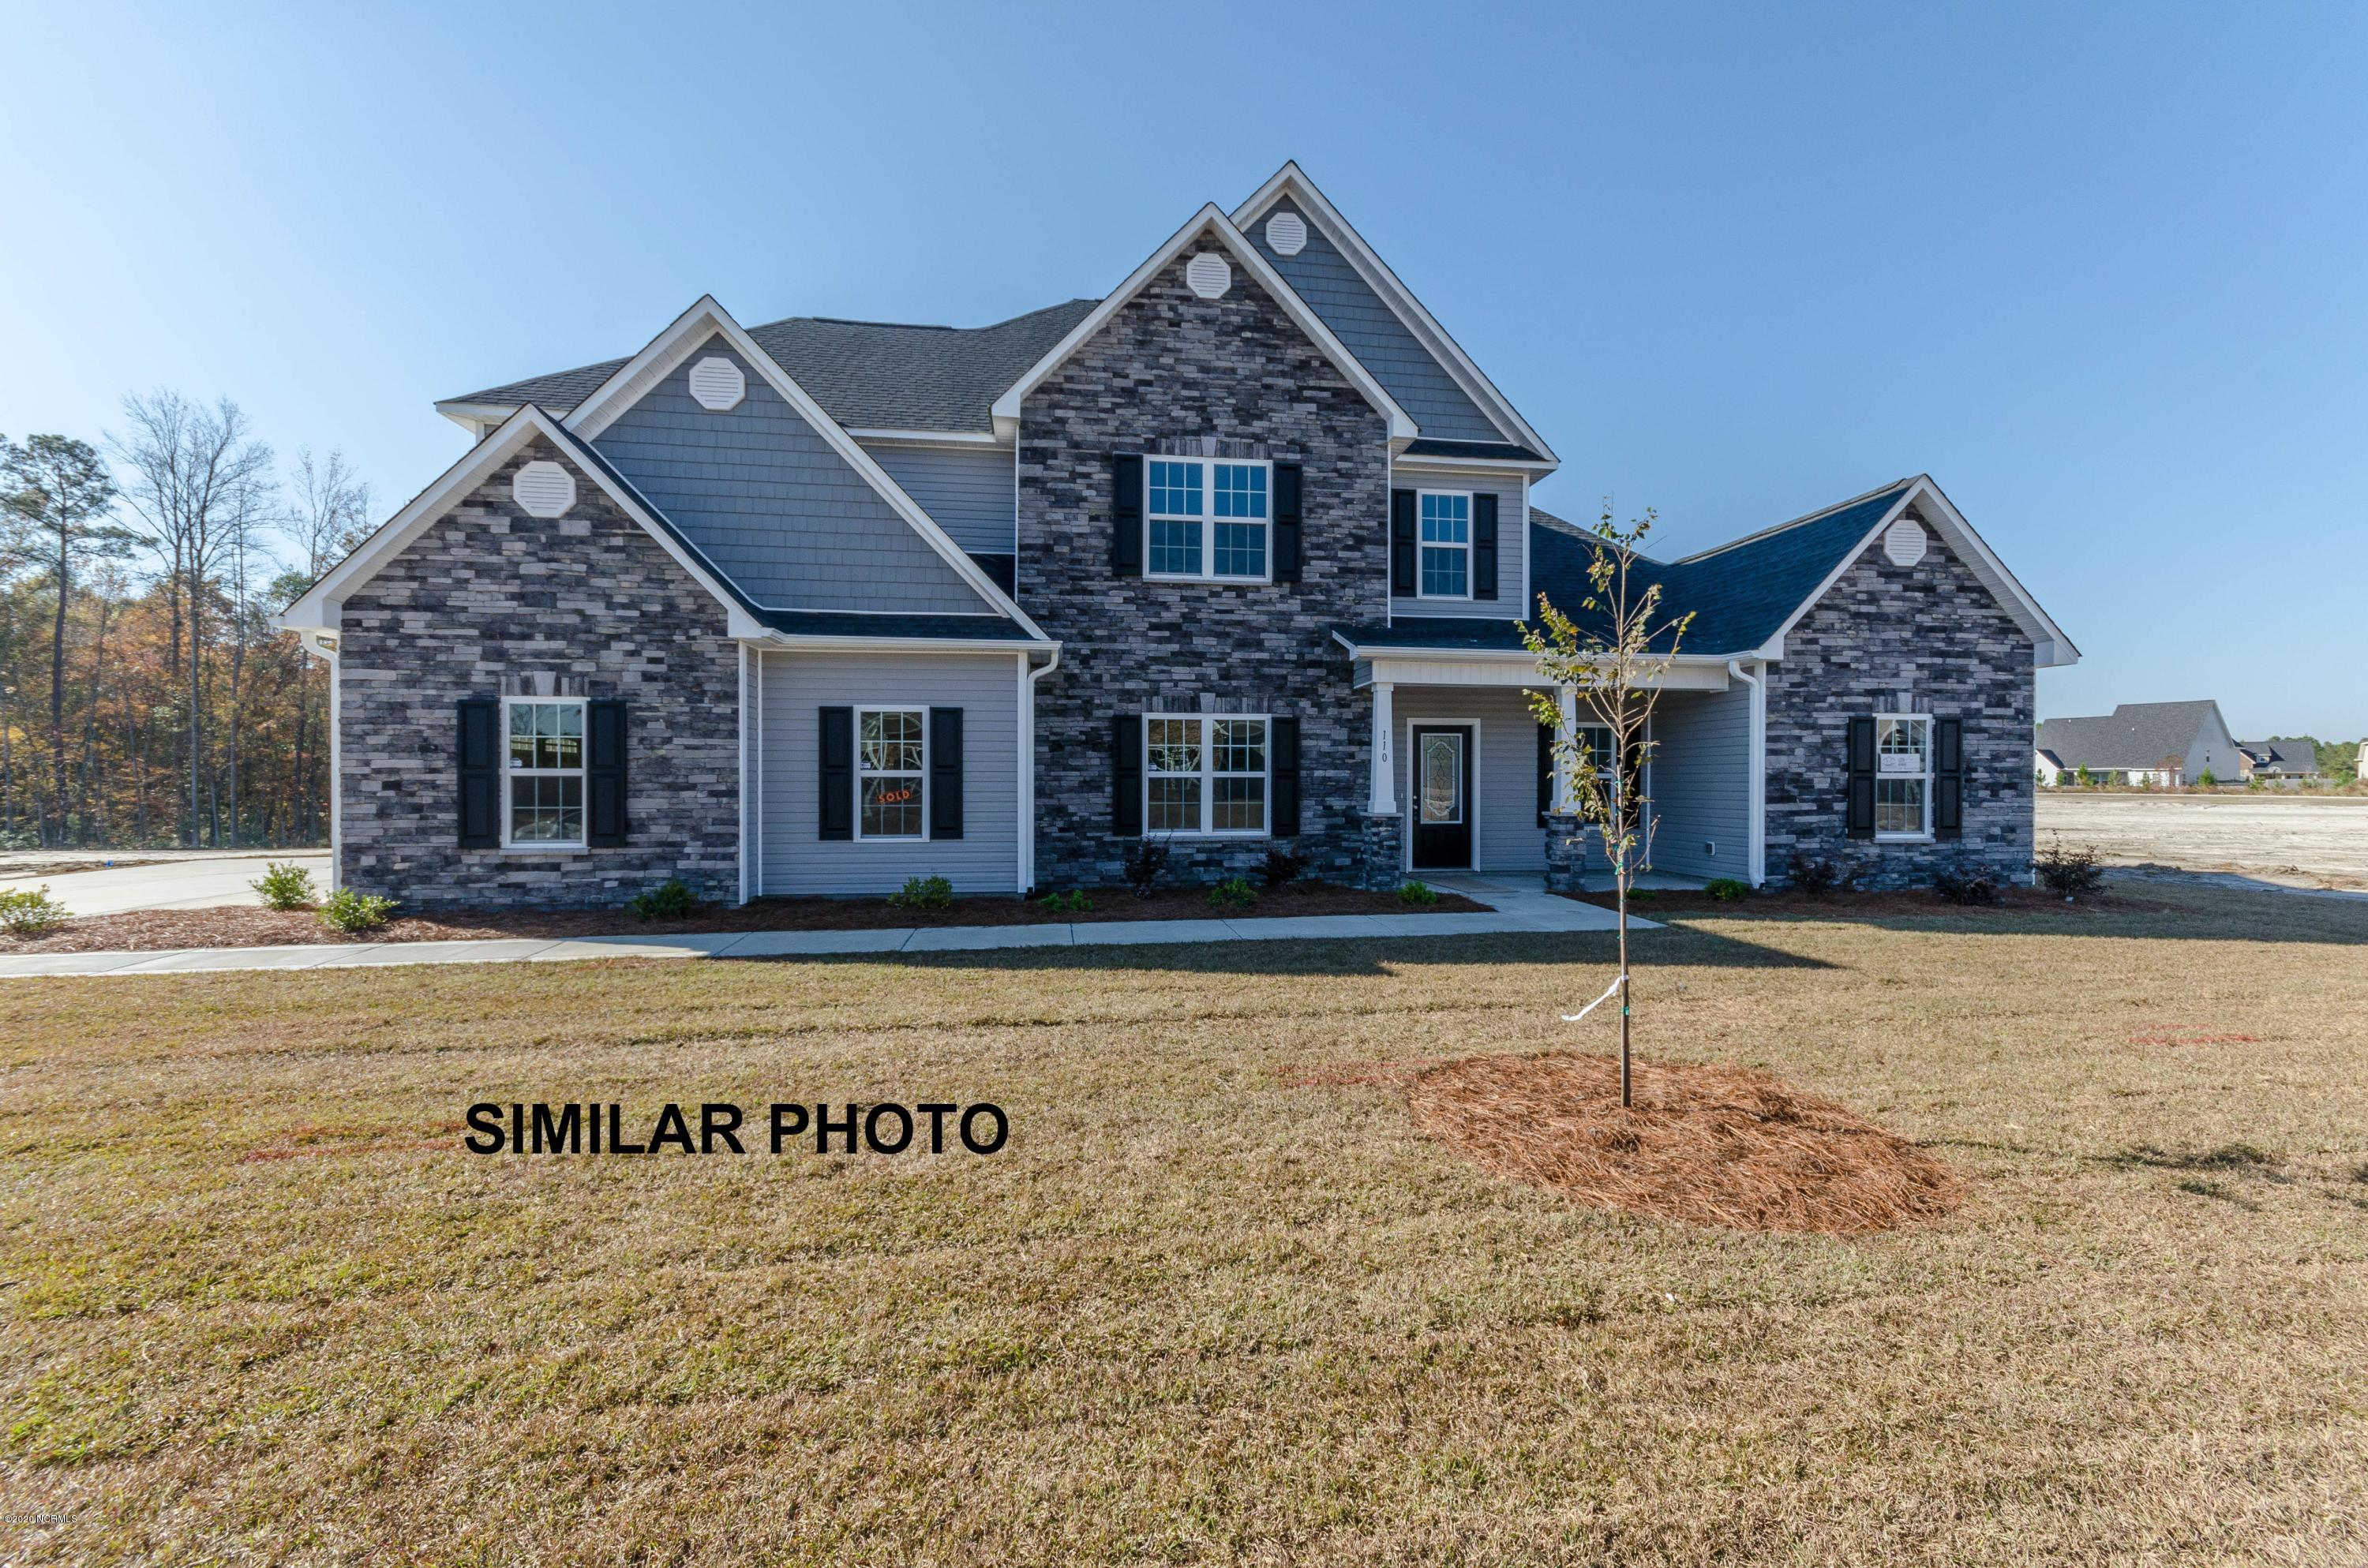 144 Evergreen Forest Court, Sneads Ferry, North Carolina 28460, 5 Bedrooms Bedrooms, ,3 BathroomsBathrooms,Residential,For Sale,Evergreen Forest,100203401